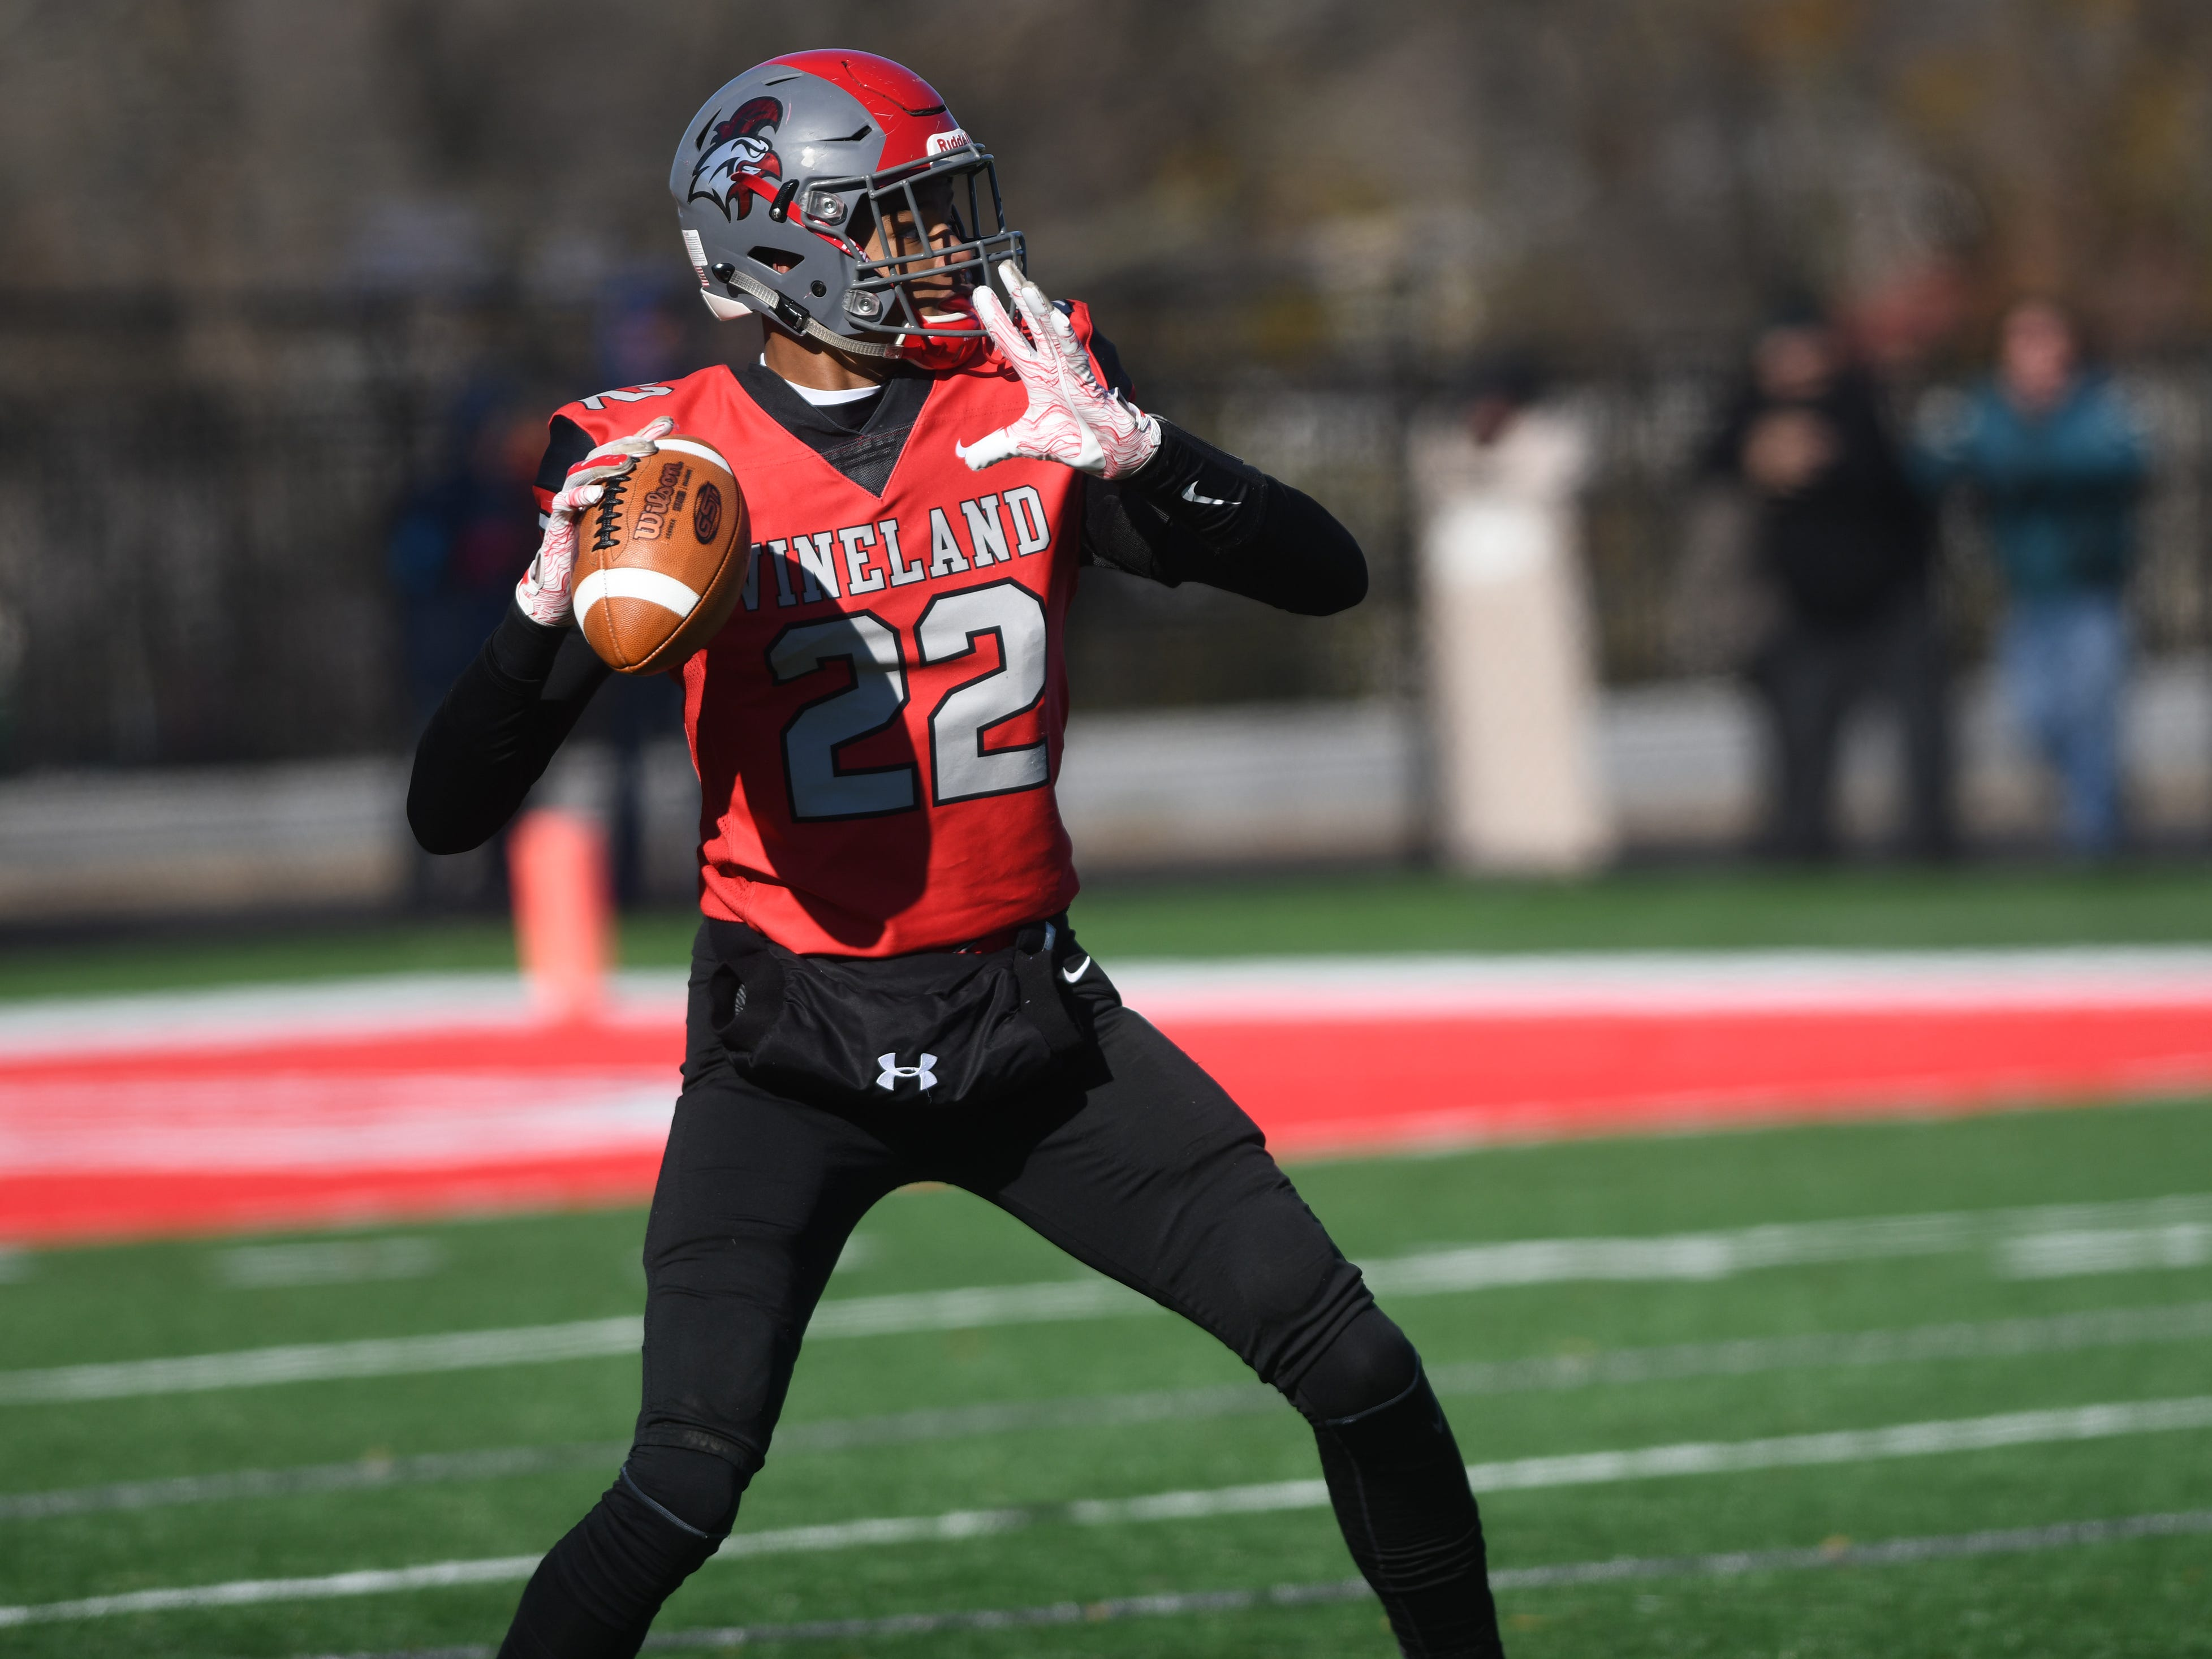 Vineland QB, Tyreem Powell, looks for a open receiver against Millville at Gittone Stadium on Thanksgiving Day. The Fighting Clan topped the Thunderbolts, 26-6 on Thursday, November 22, 2018.